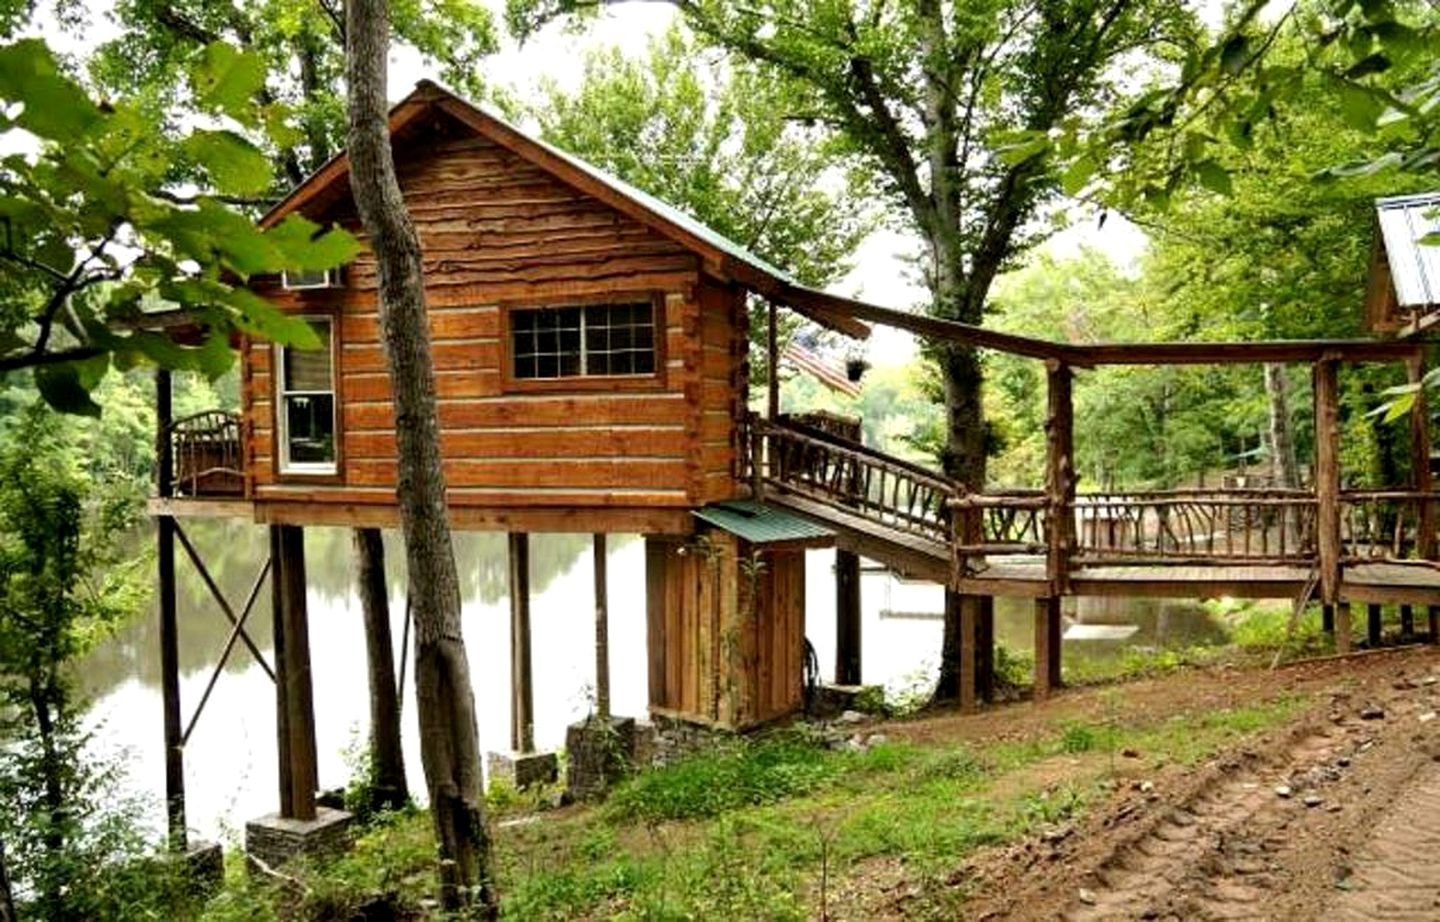 Tree house for rent with elevated walkway on a body of water in Jackson, Georgia.